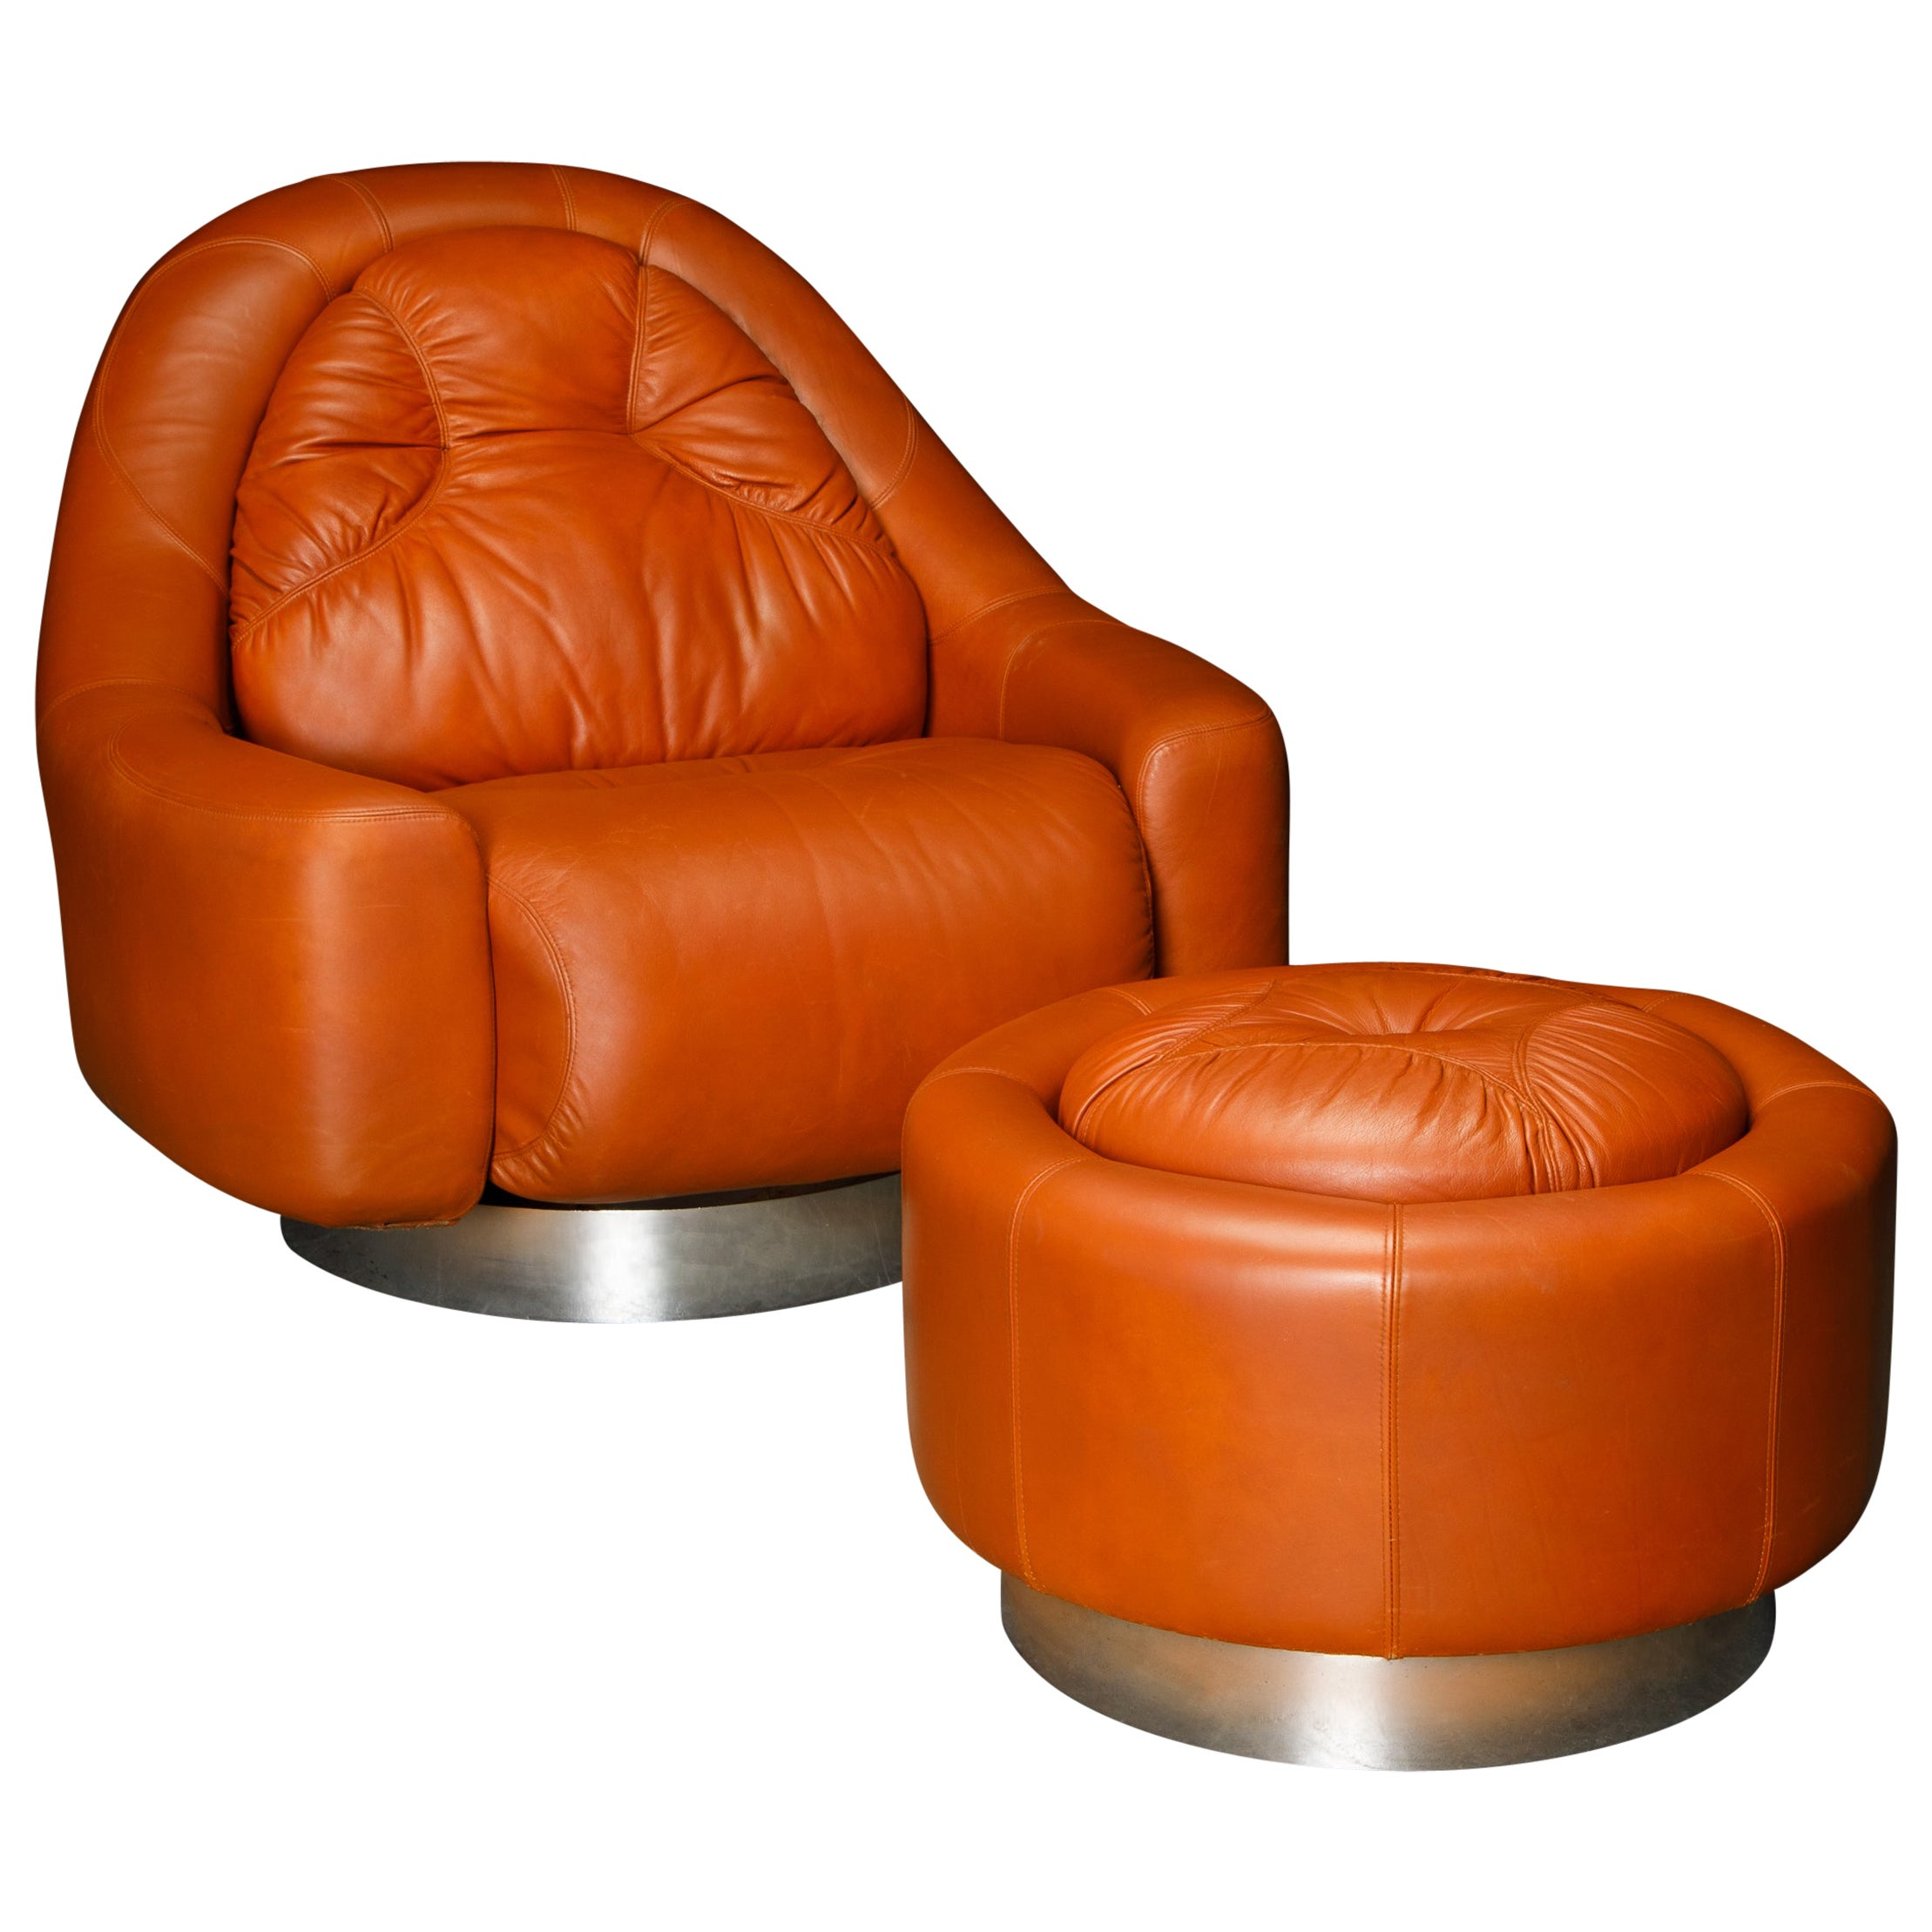 'Zator' Swivel Chair and Ottoman by Guido Faleschini for Mariani, 1971, Signed